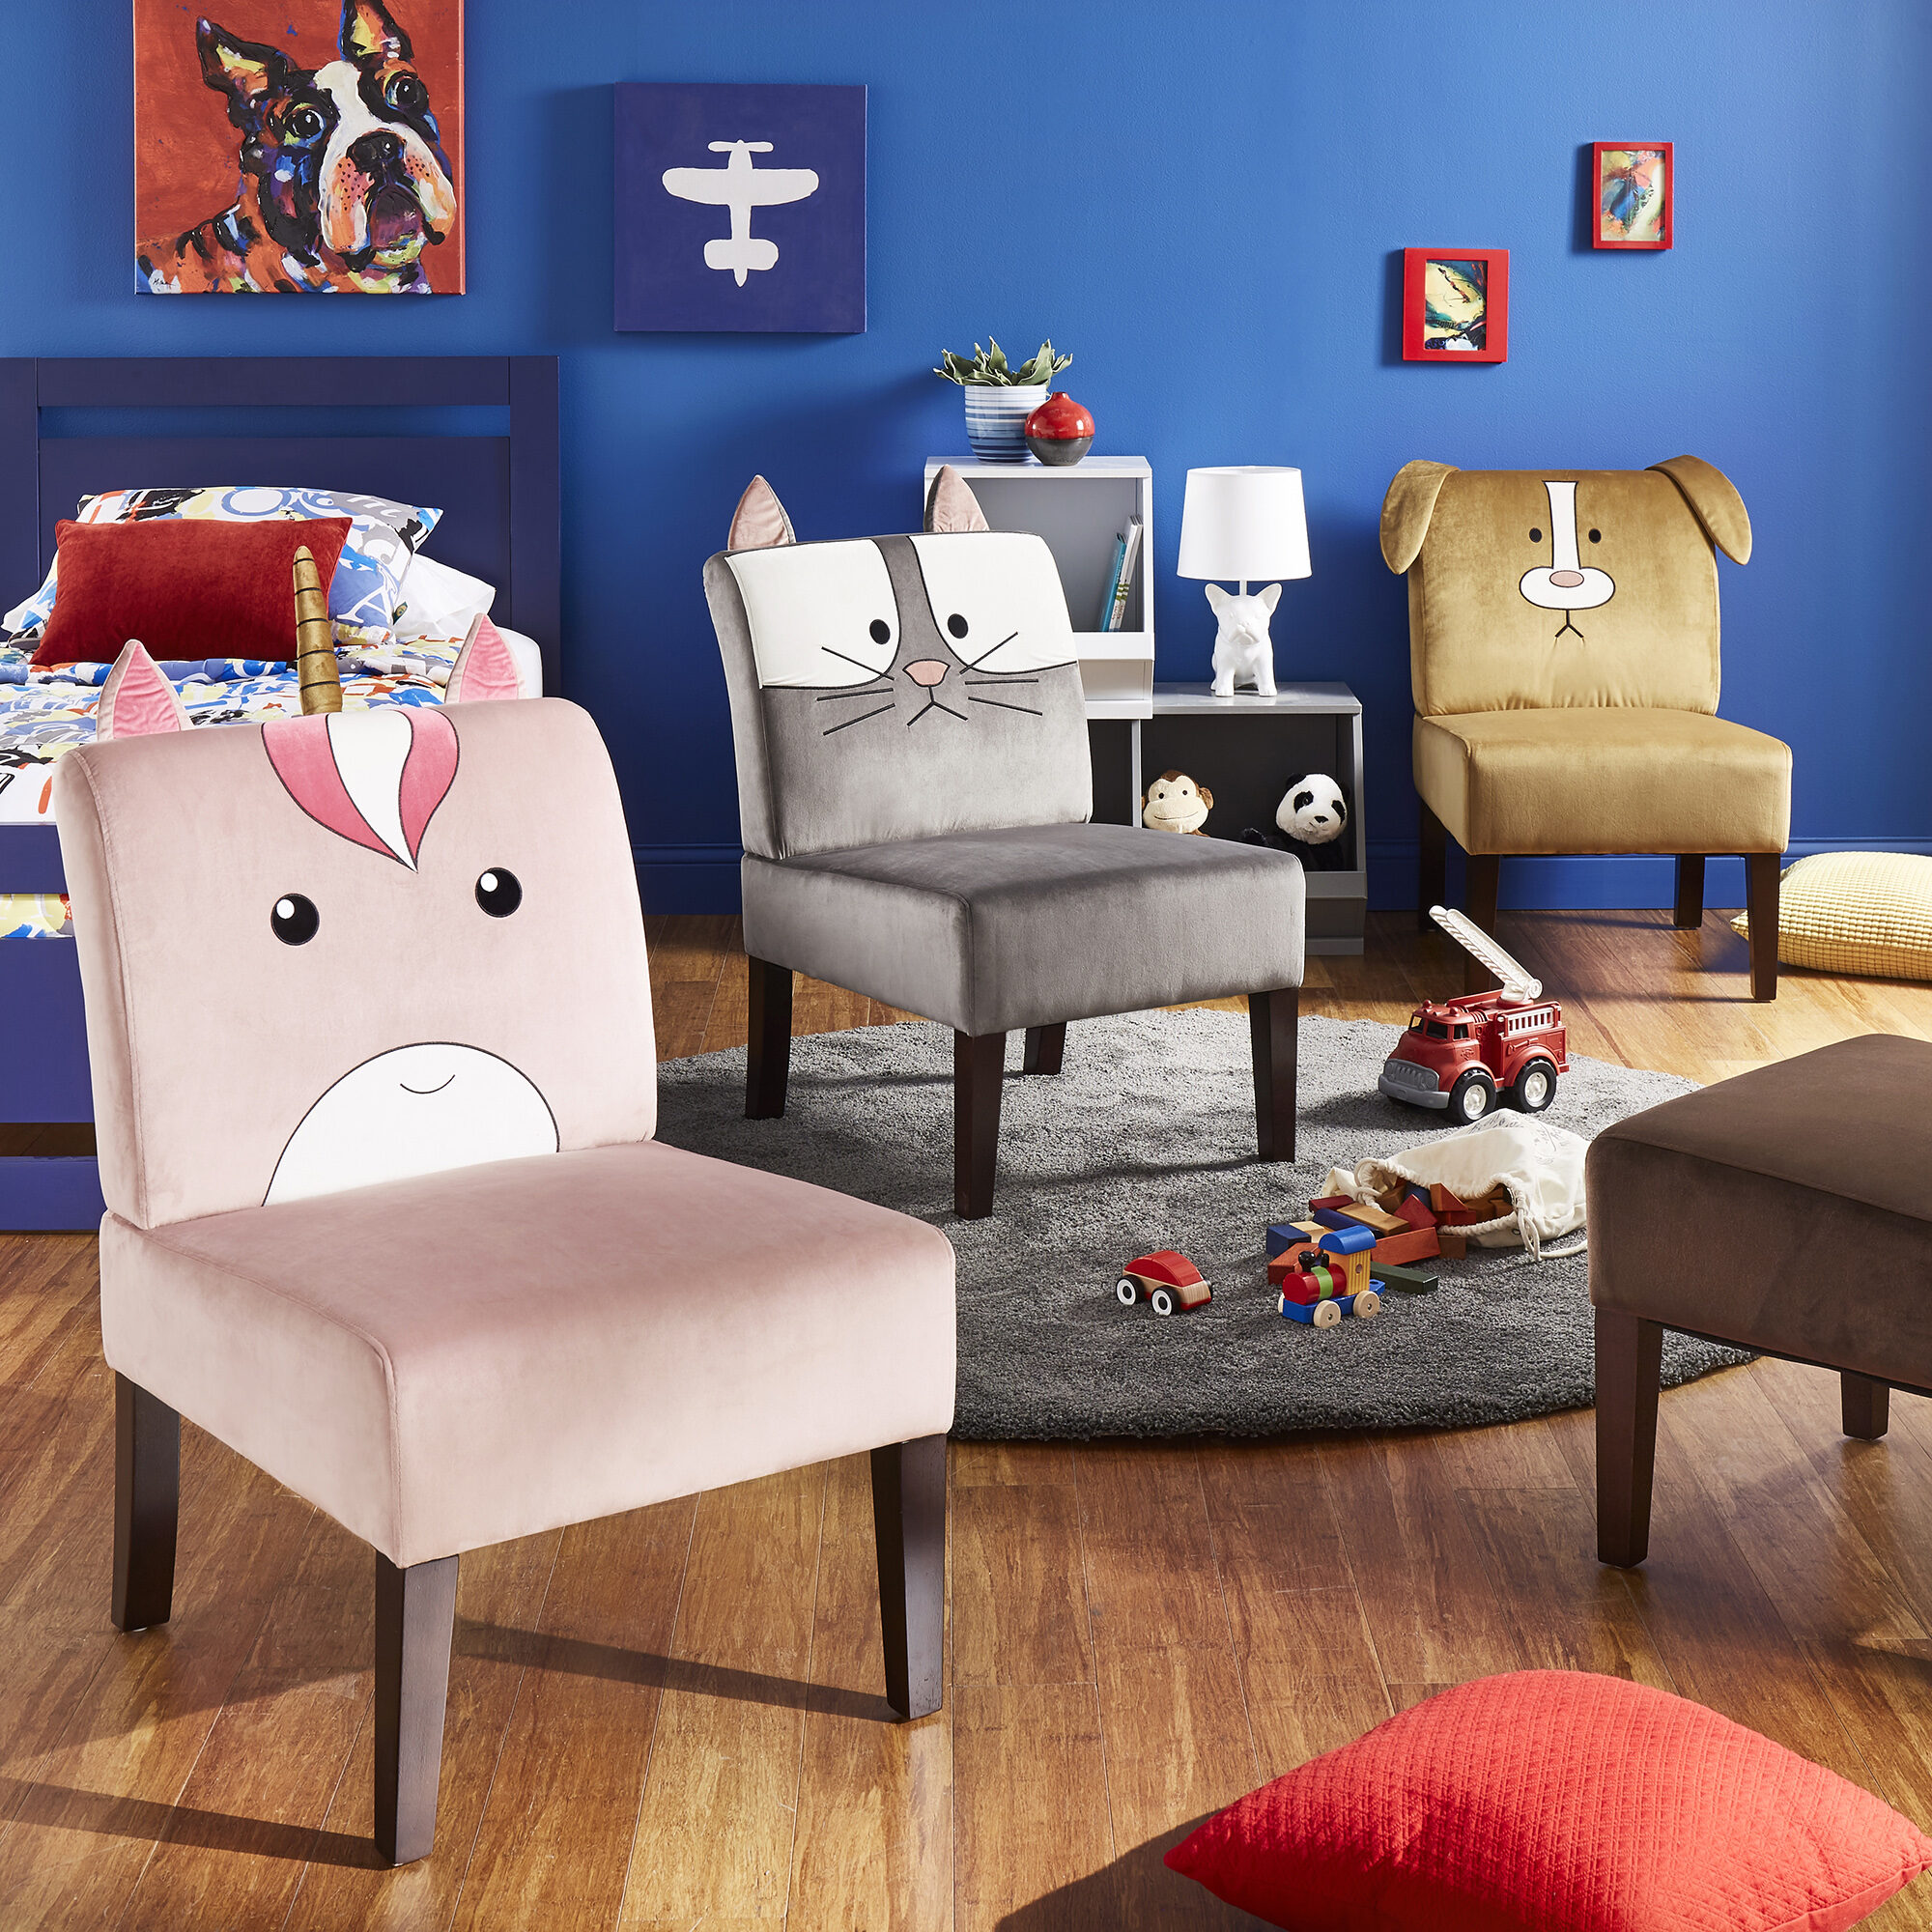 Another piece of furniture in our kids' bedroom ideas is a plush chair to put at their desk. These chairs are not only super soft and cozy, but also display your child's favorite animal on the backrest.